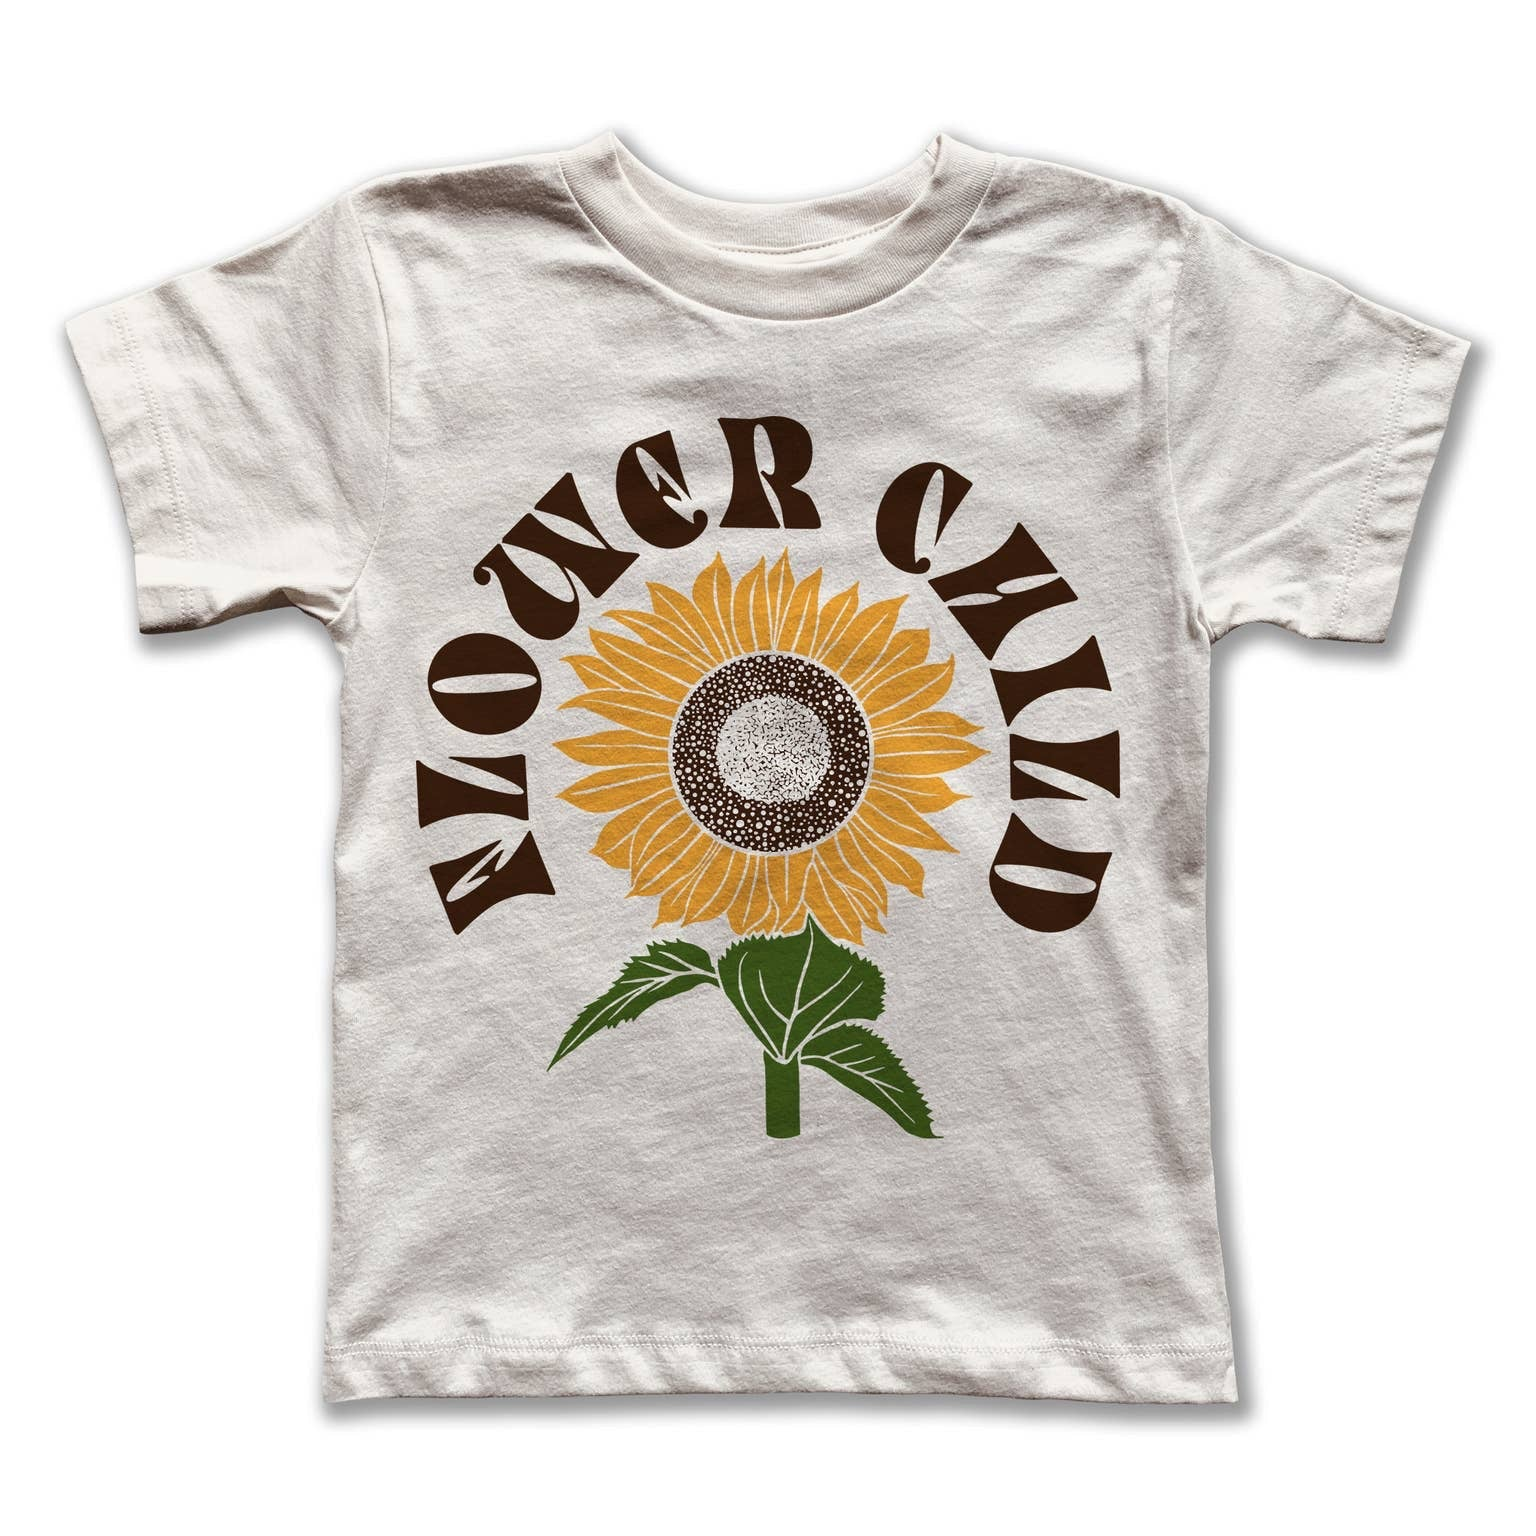 Toddler- Flower Child Tee